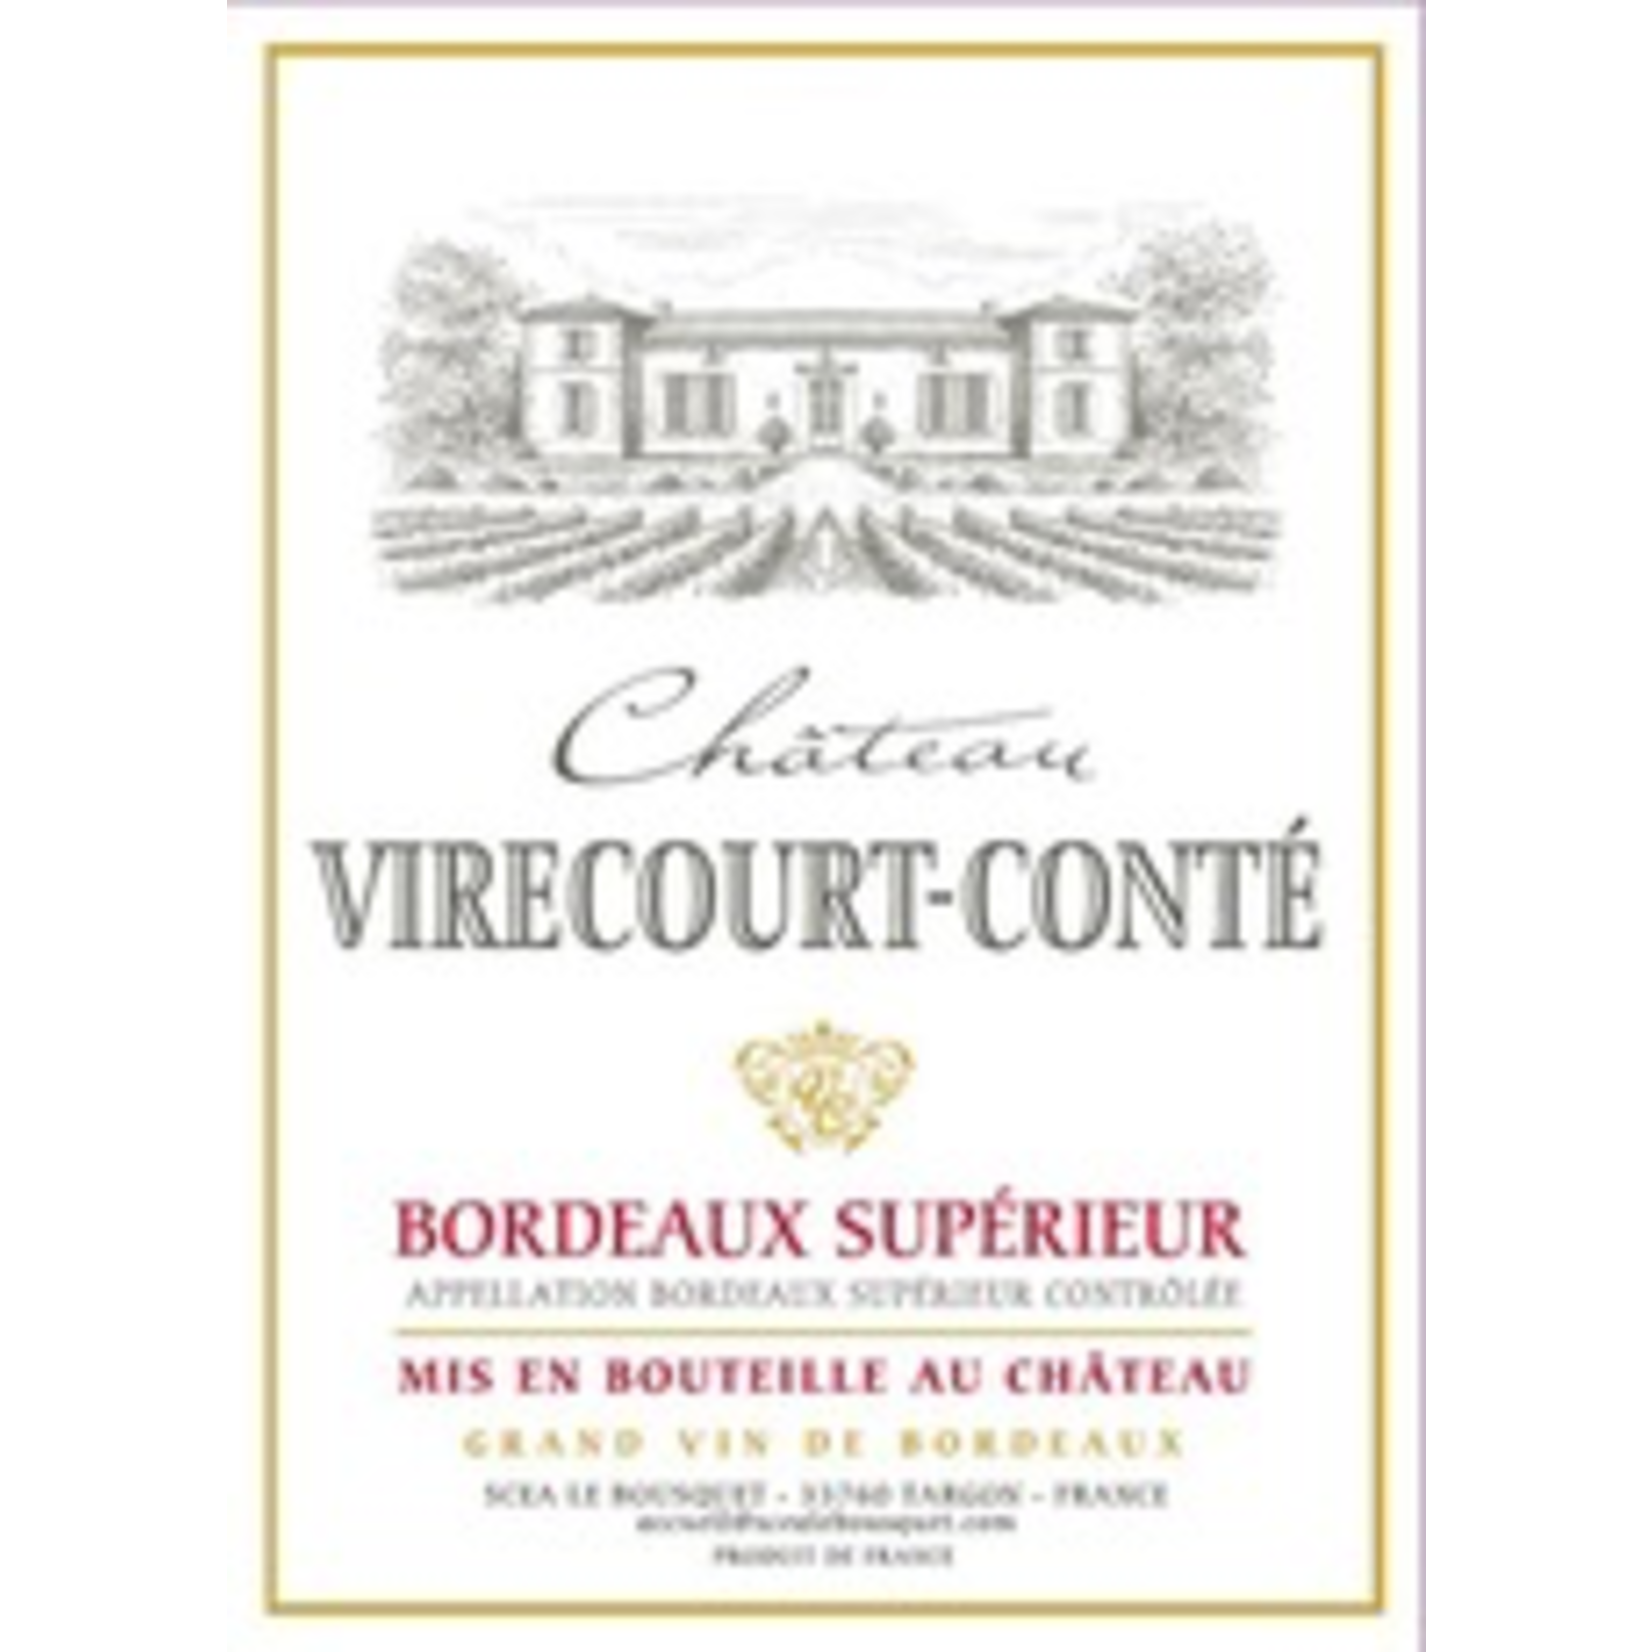 Wine Chateau Virecourt-Conte Bordeaux Superieur 2016